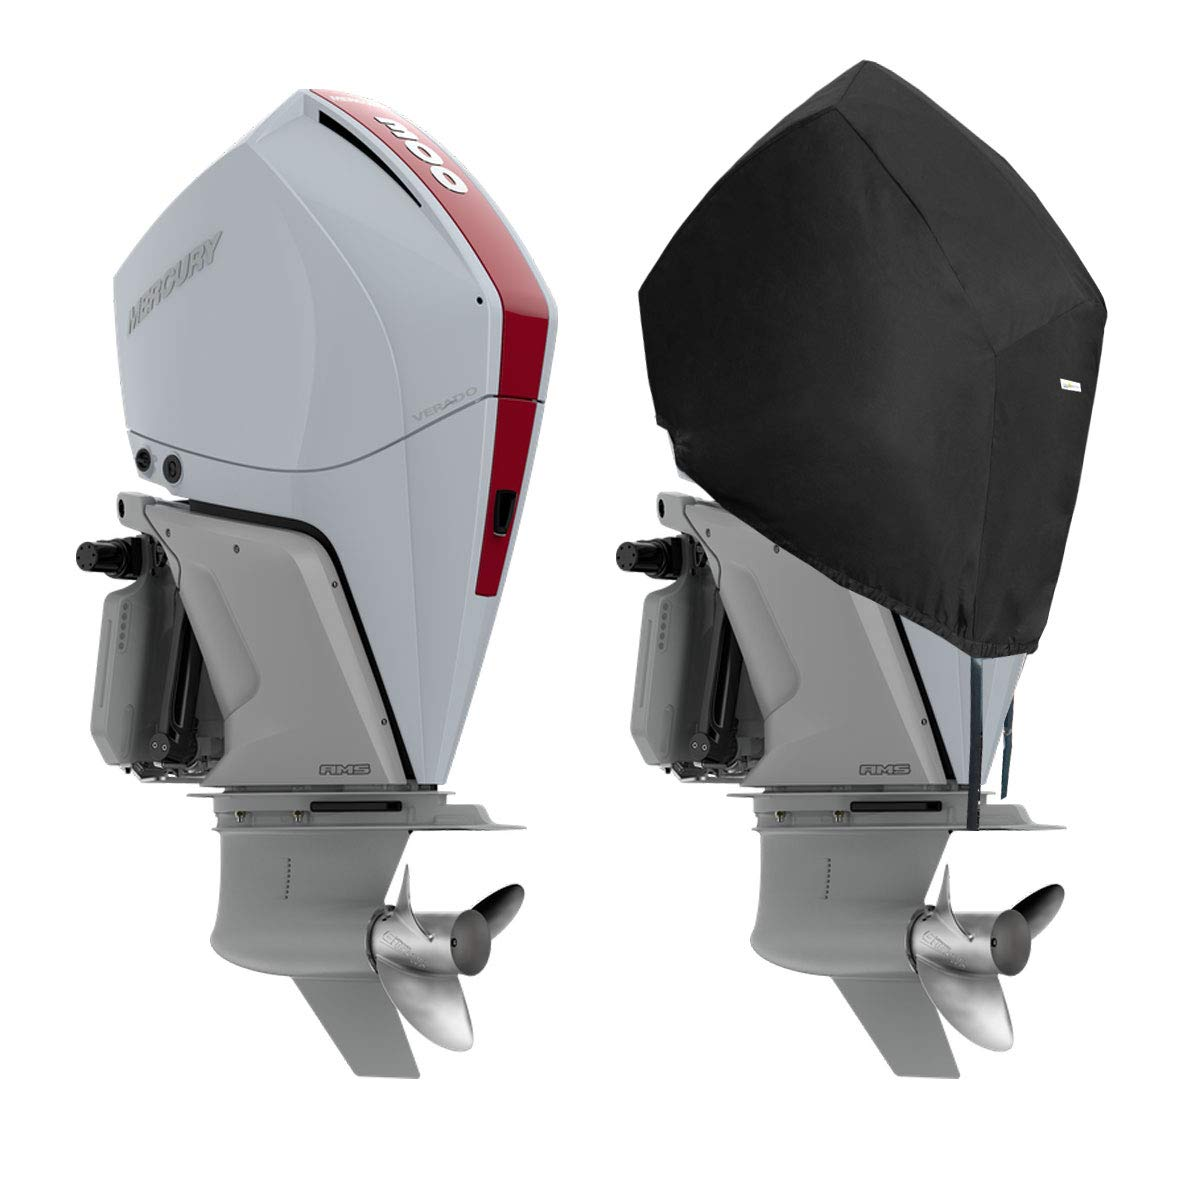 4 Stroke V8 4.6L 450R 300HP Oceansouth Mercury Half Outboard Cover 250HP 2018 200 to 300 Pro XS